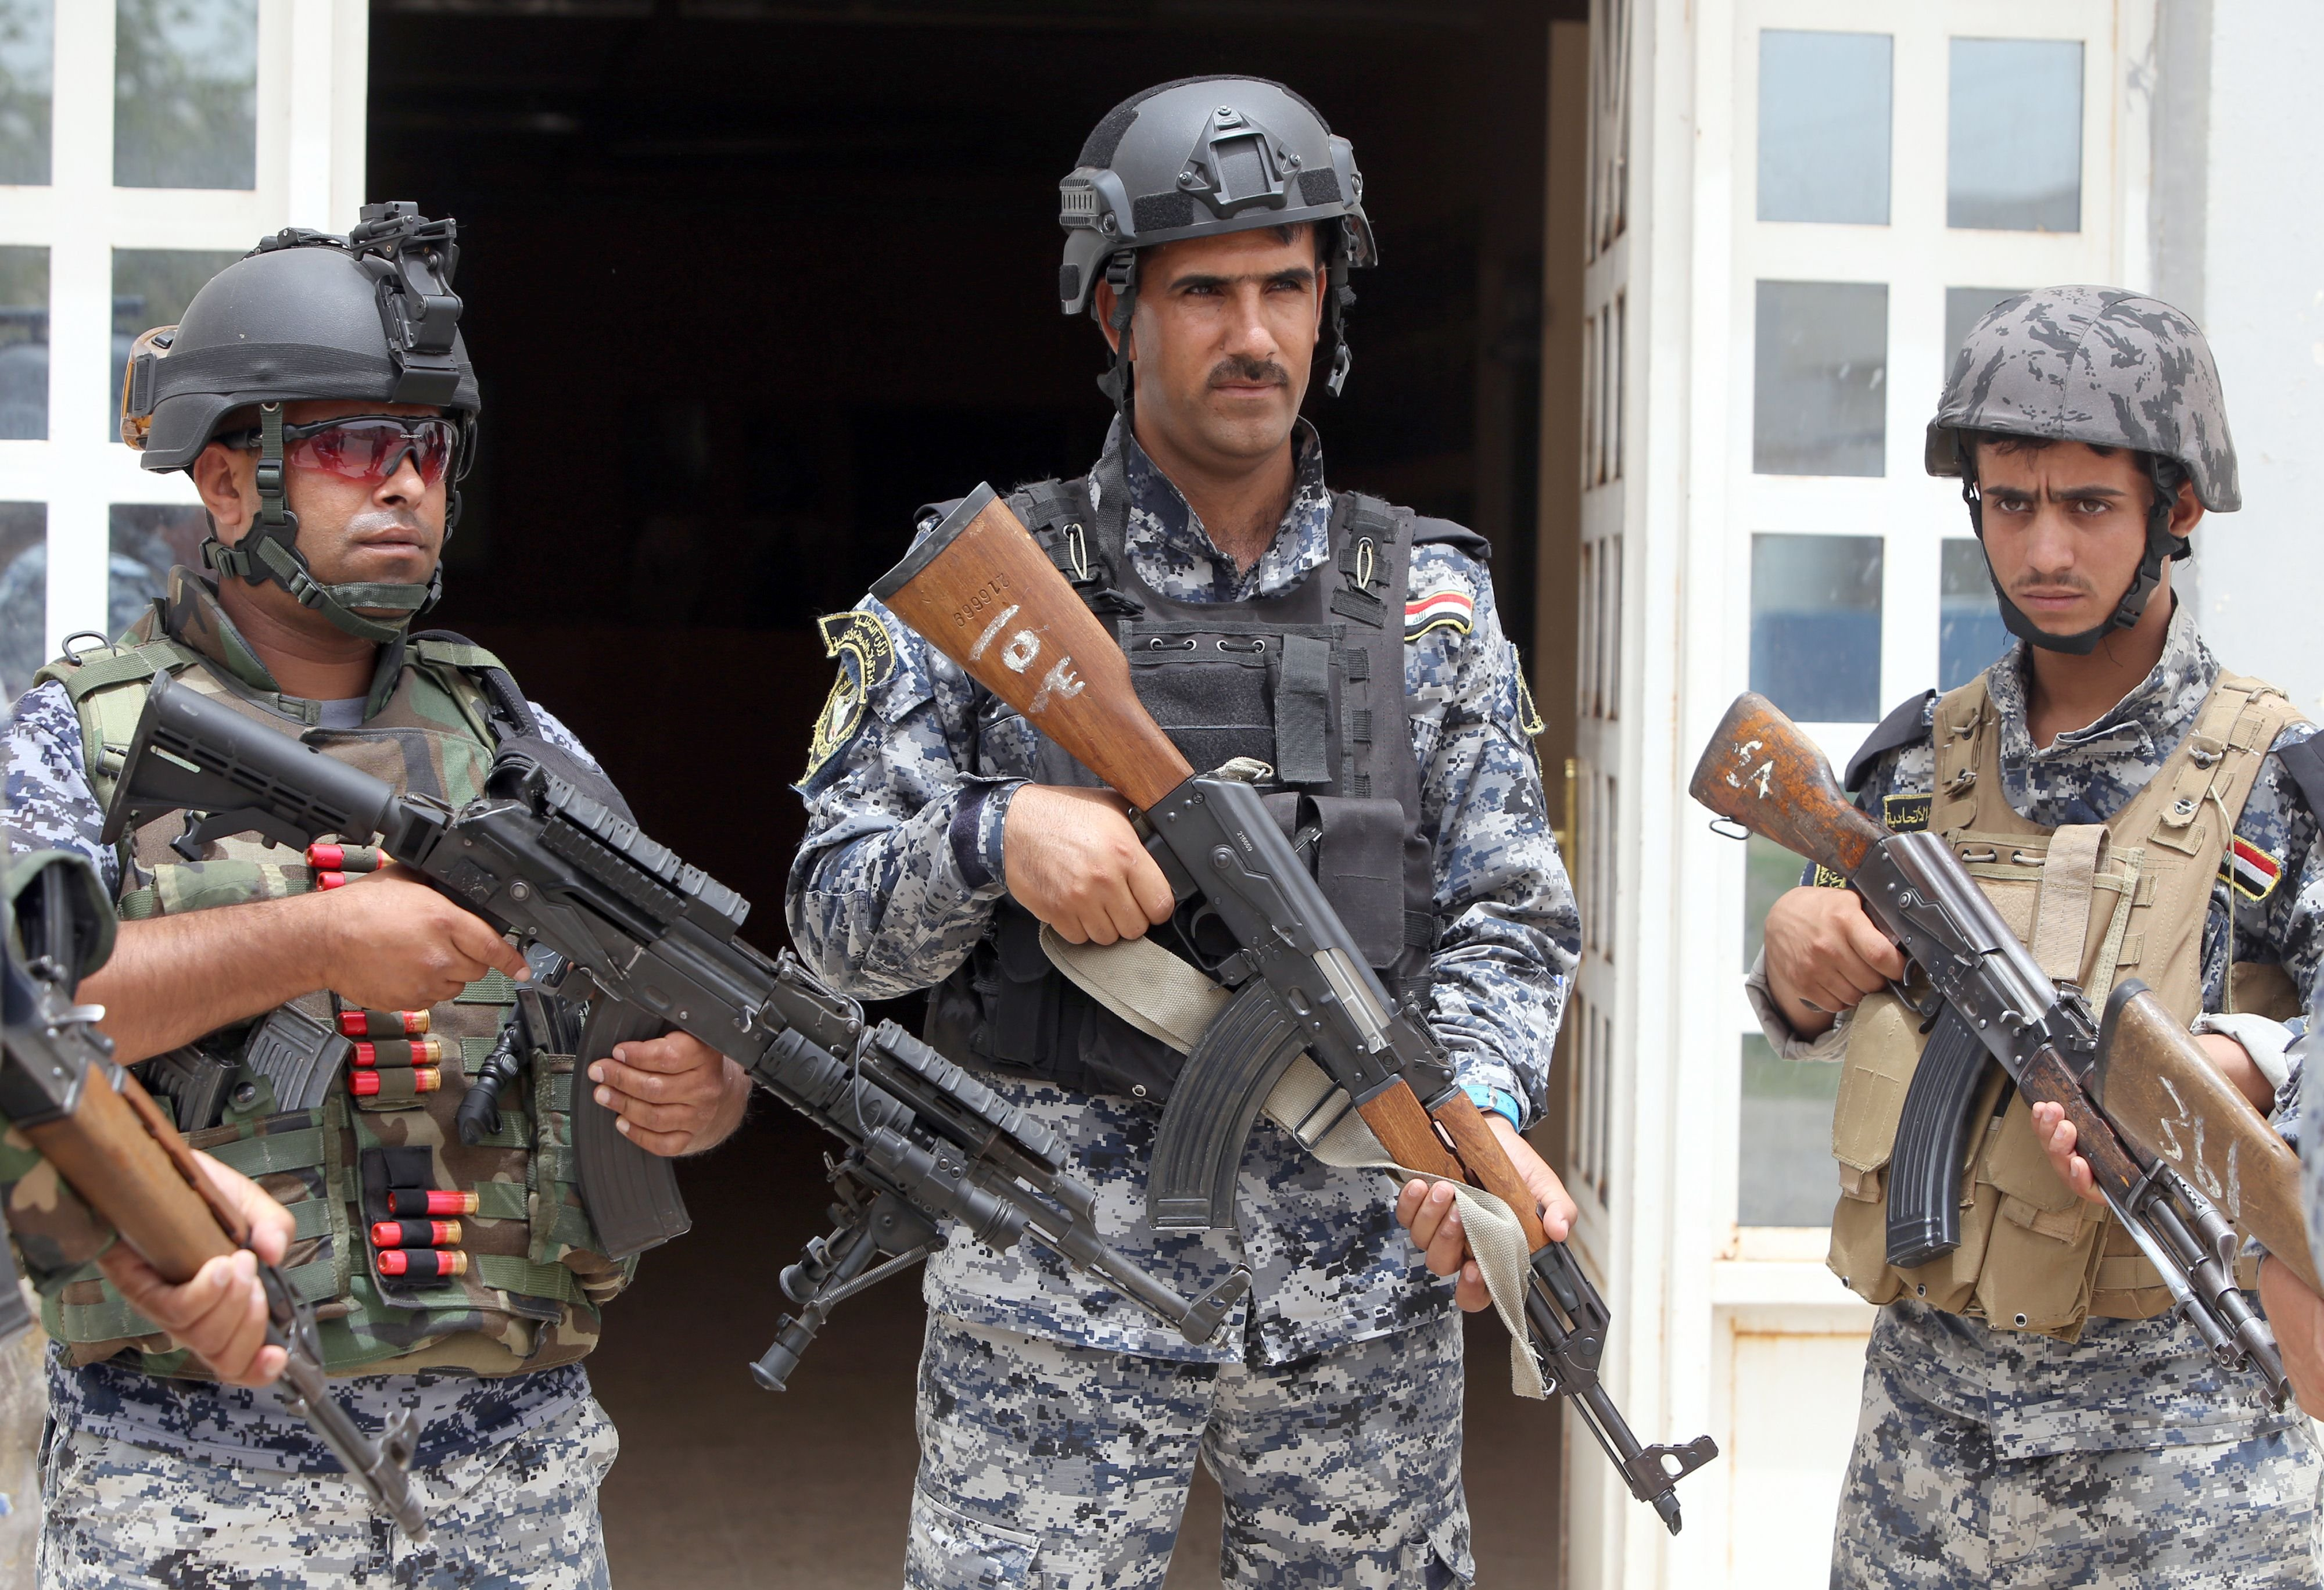 Iraqi policemen listen to a briefing inside a military base in the capital Baghdad, on June 11, 2014, after the declaration of a state of emergency by the government.